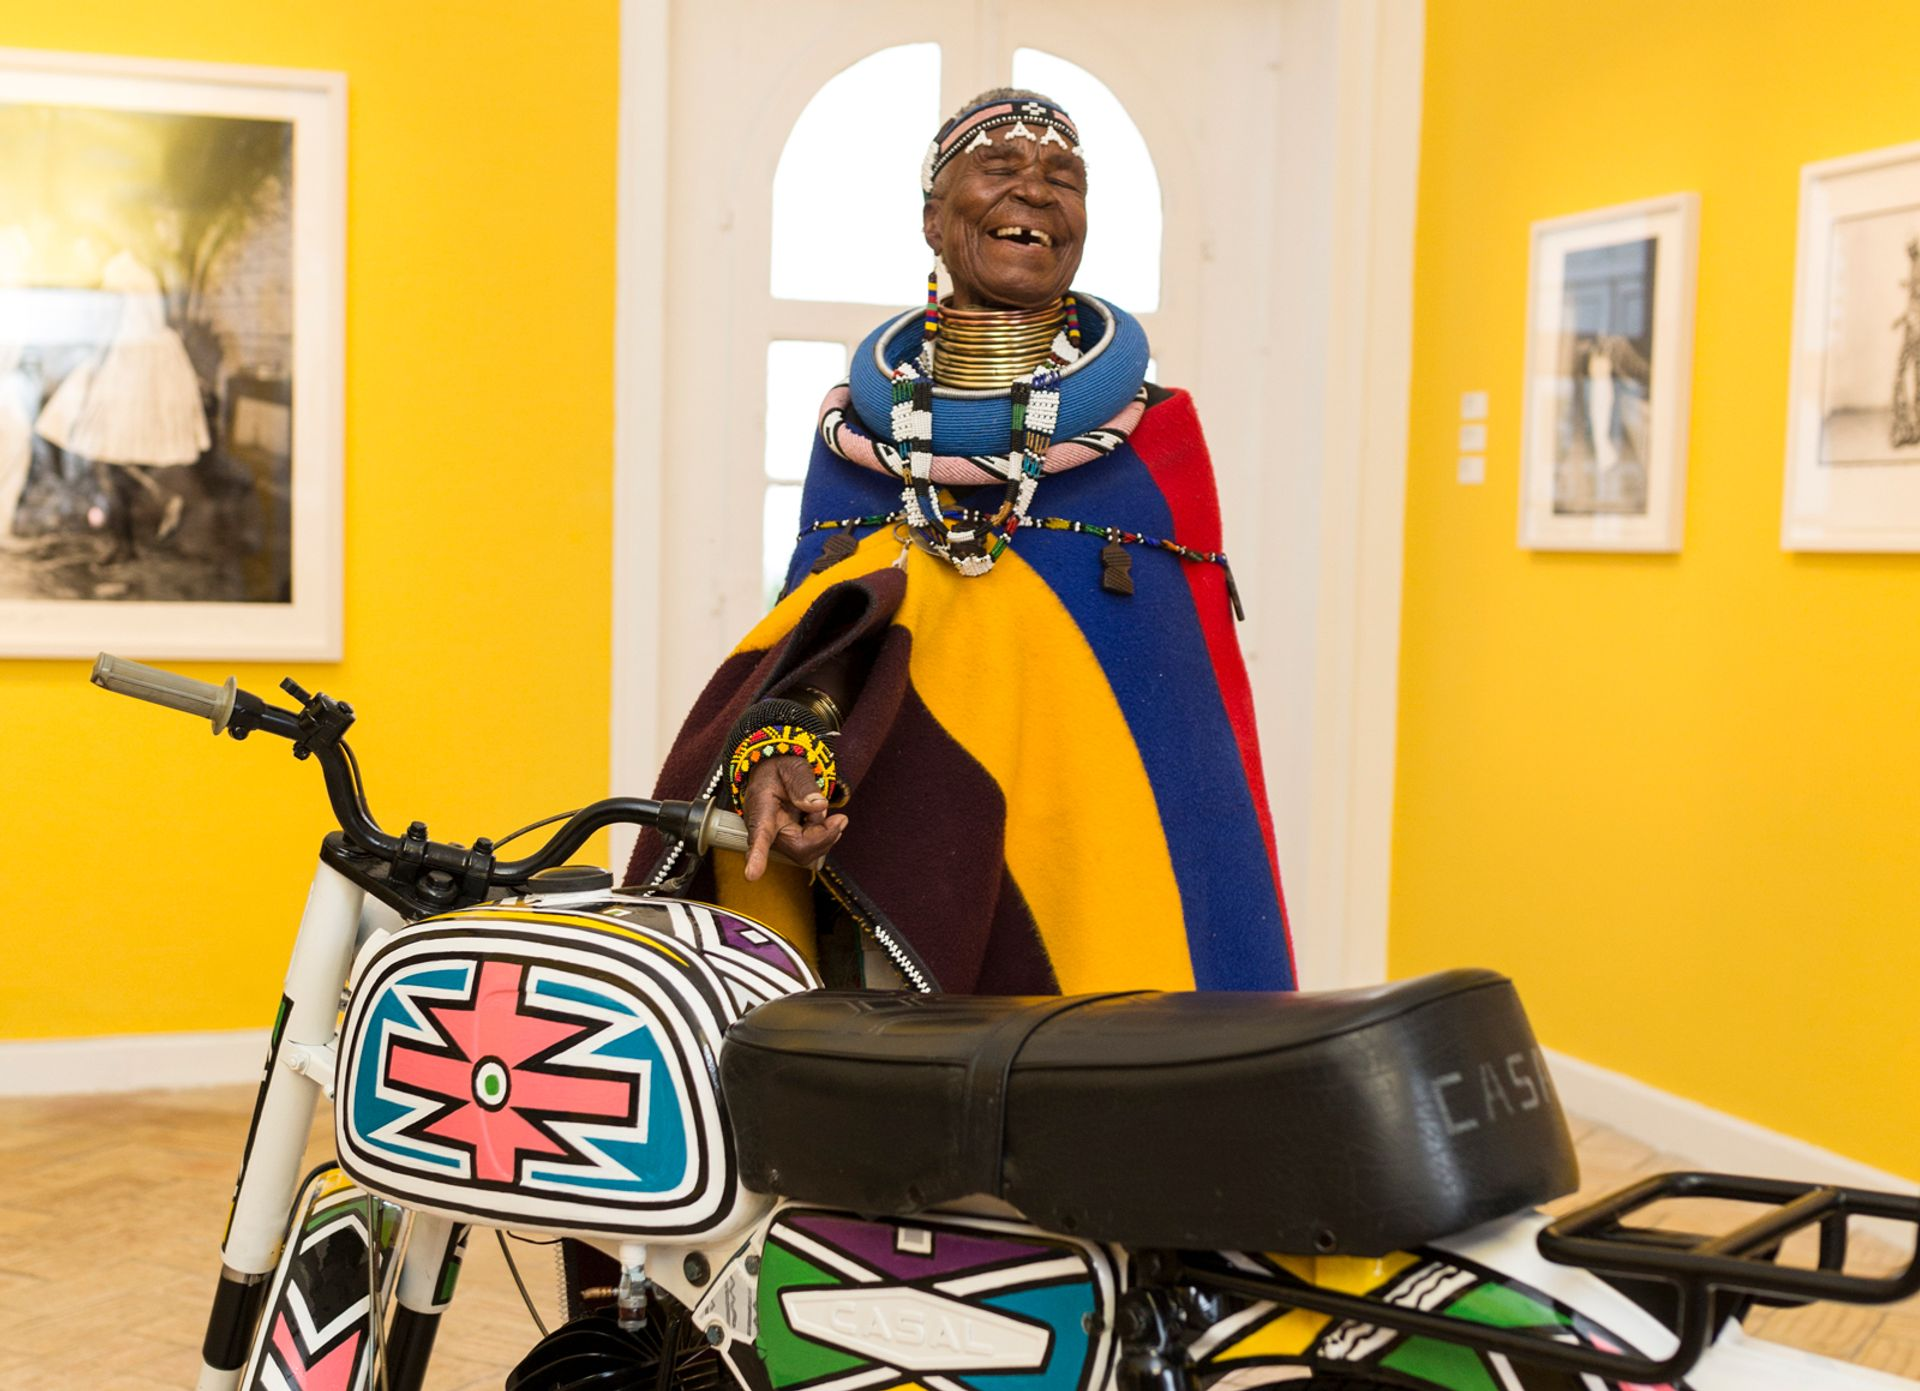 Esther Mahlangu with the motorbike she has decorated for the exhibition African Passions, part of the inaugural Evora Africa festival in the Alentejo region of Portugal African Passions, Palacio Cadaval, 2018